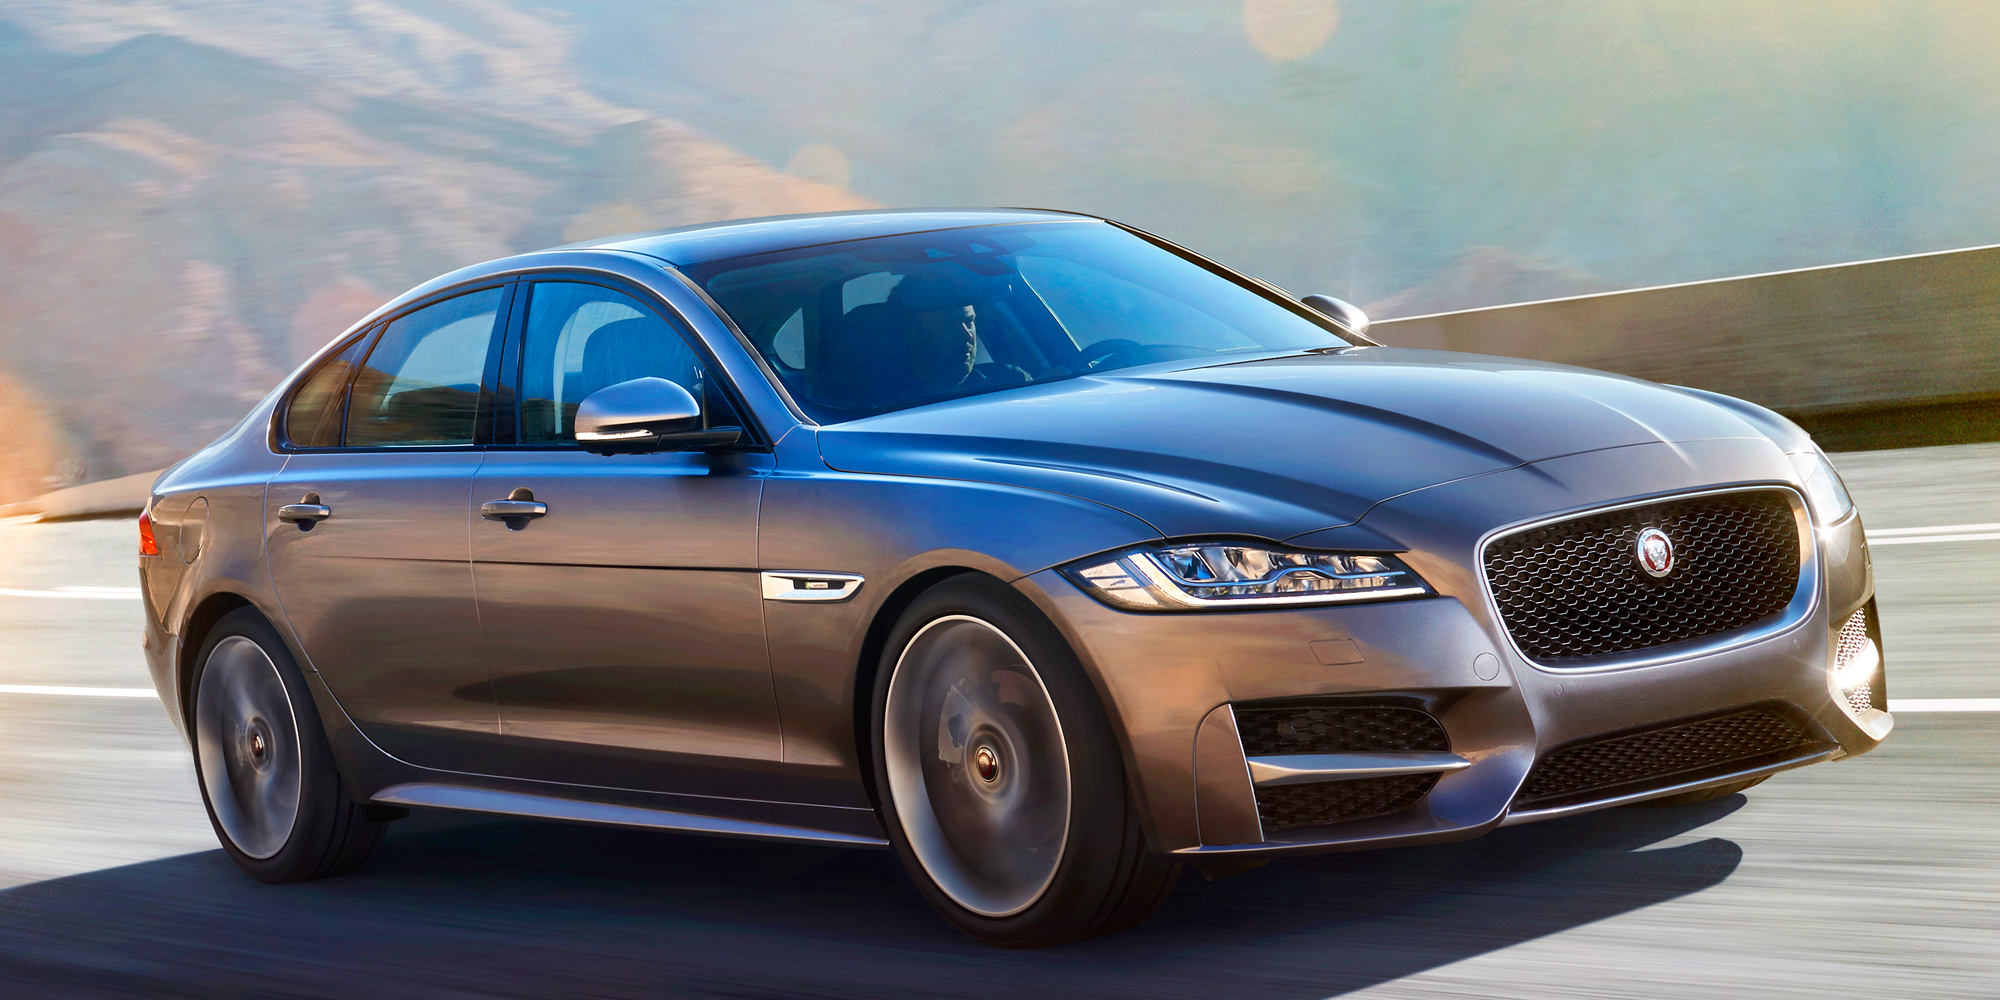 2016 Jaguar XF S - First Drive - Road & Track